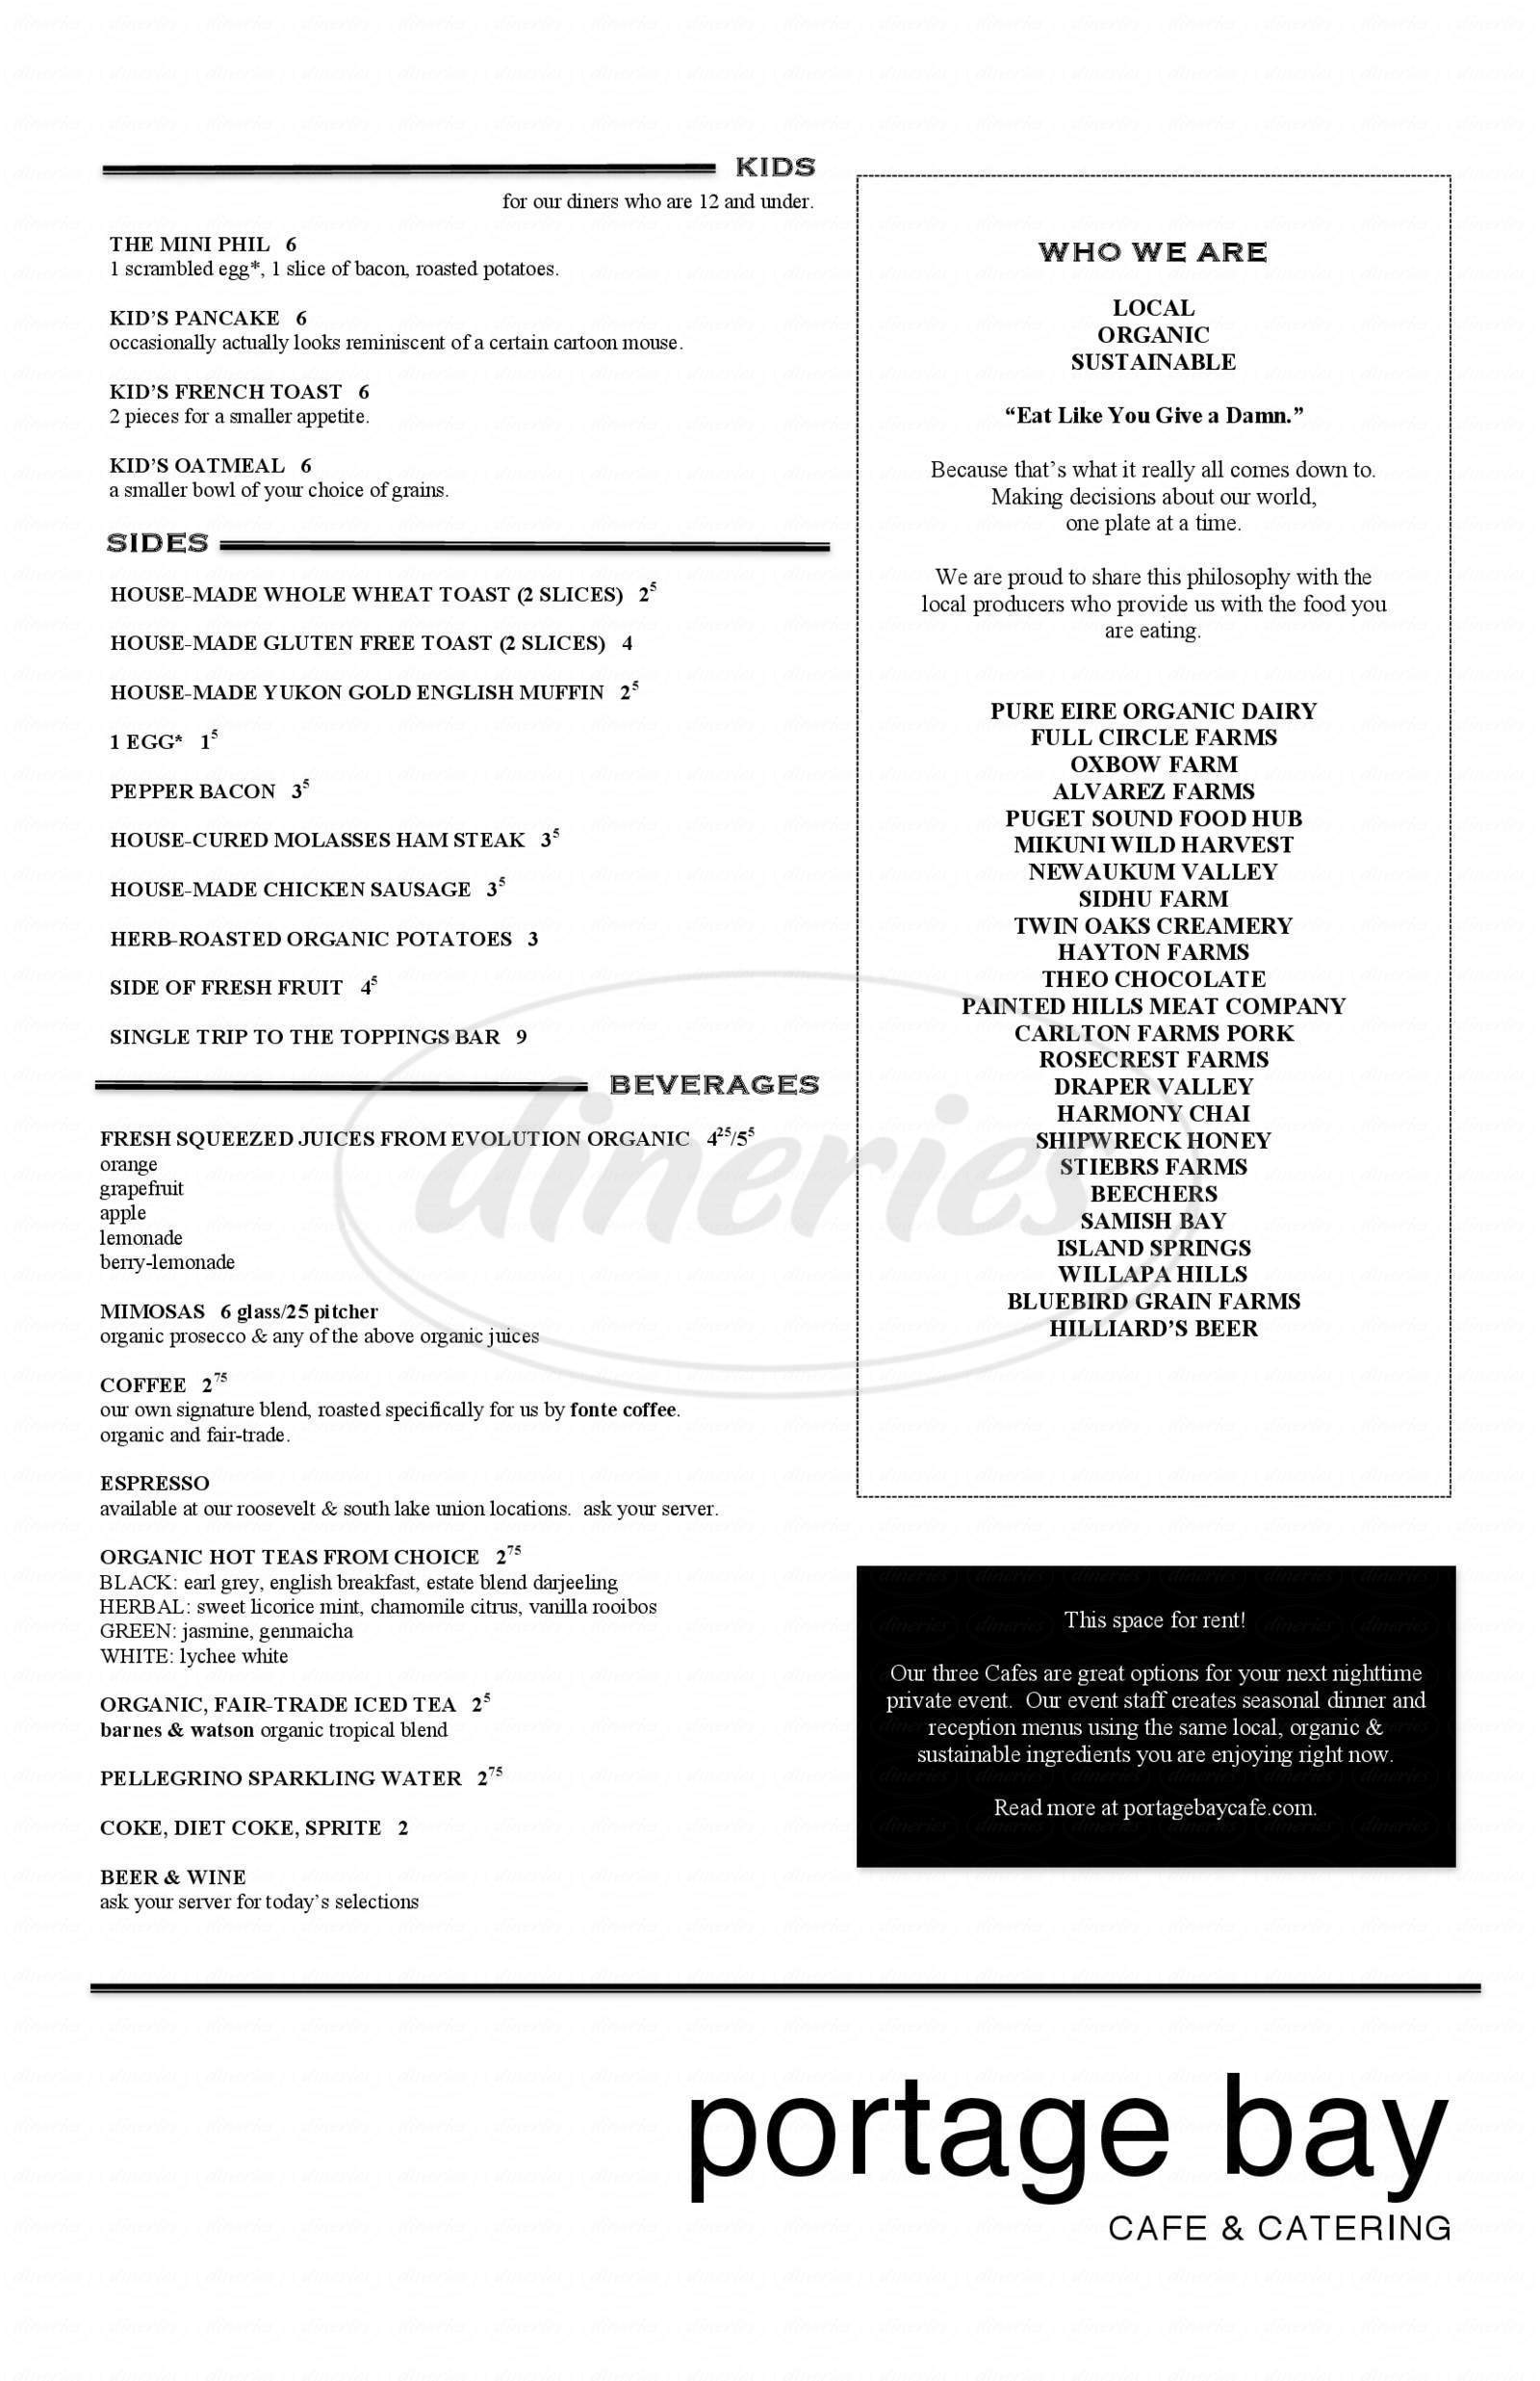 menu for Portage Bay Café & Catering